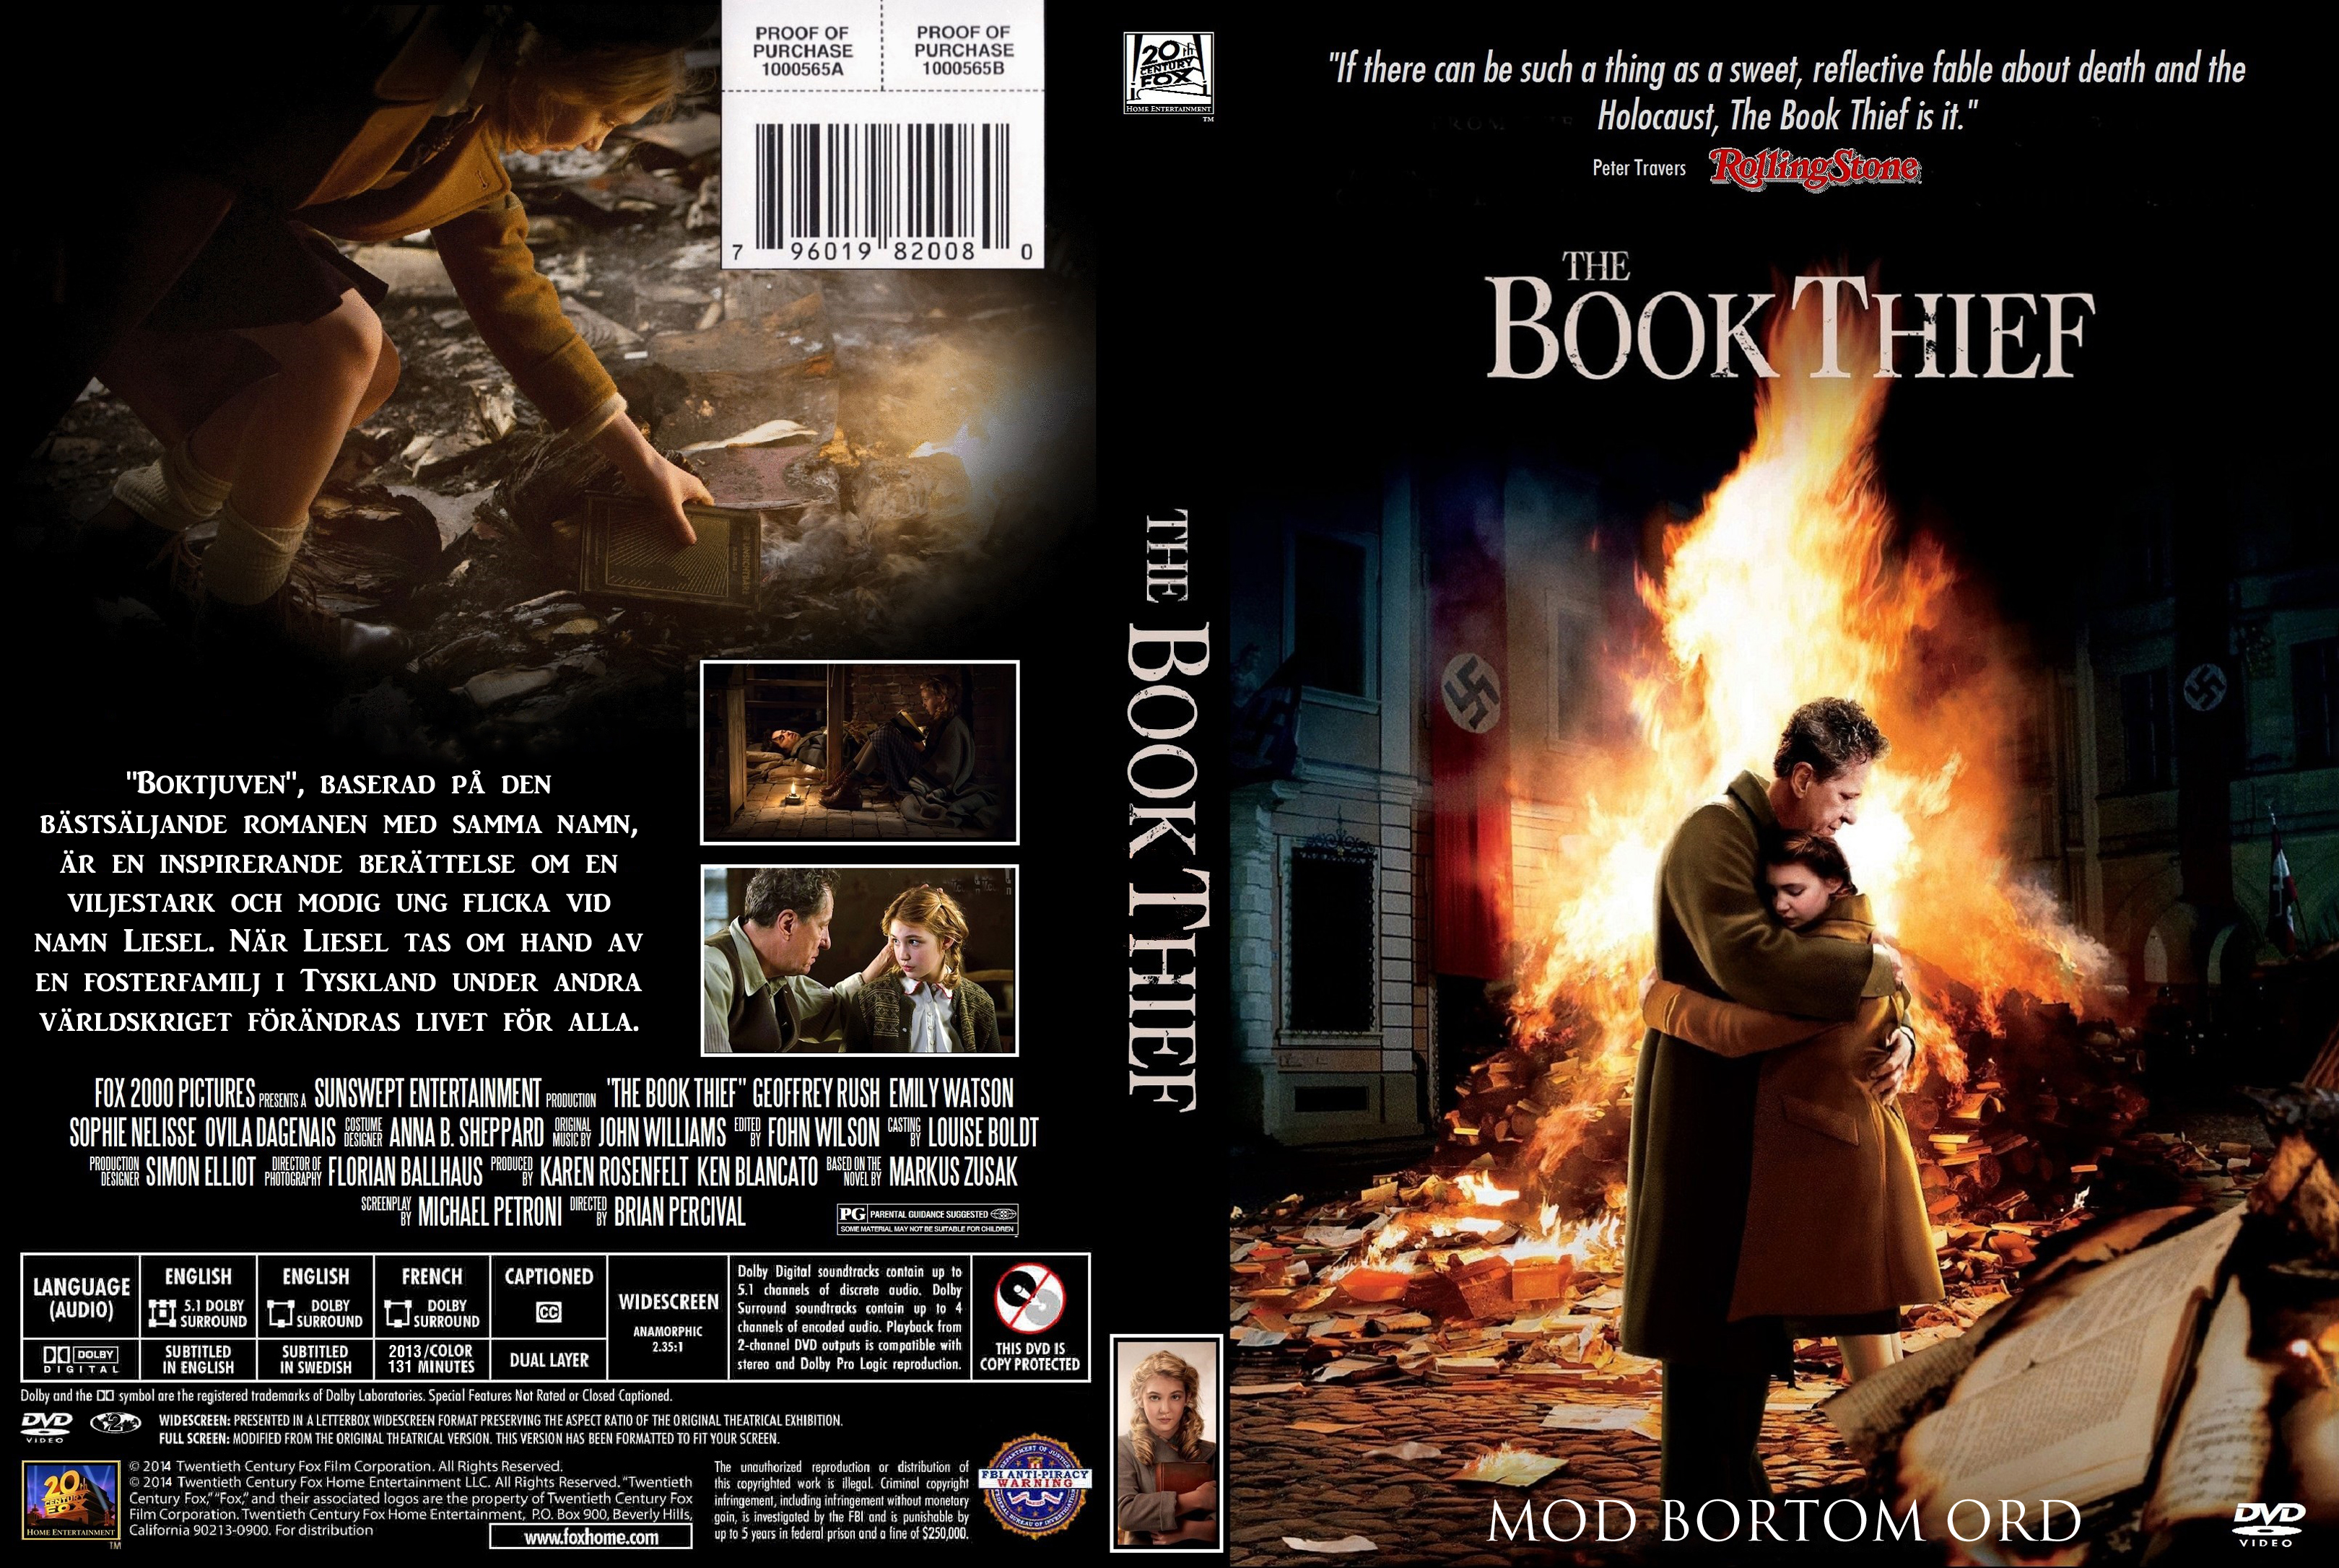 my reading of the book thief